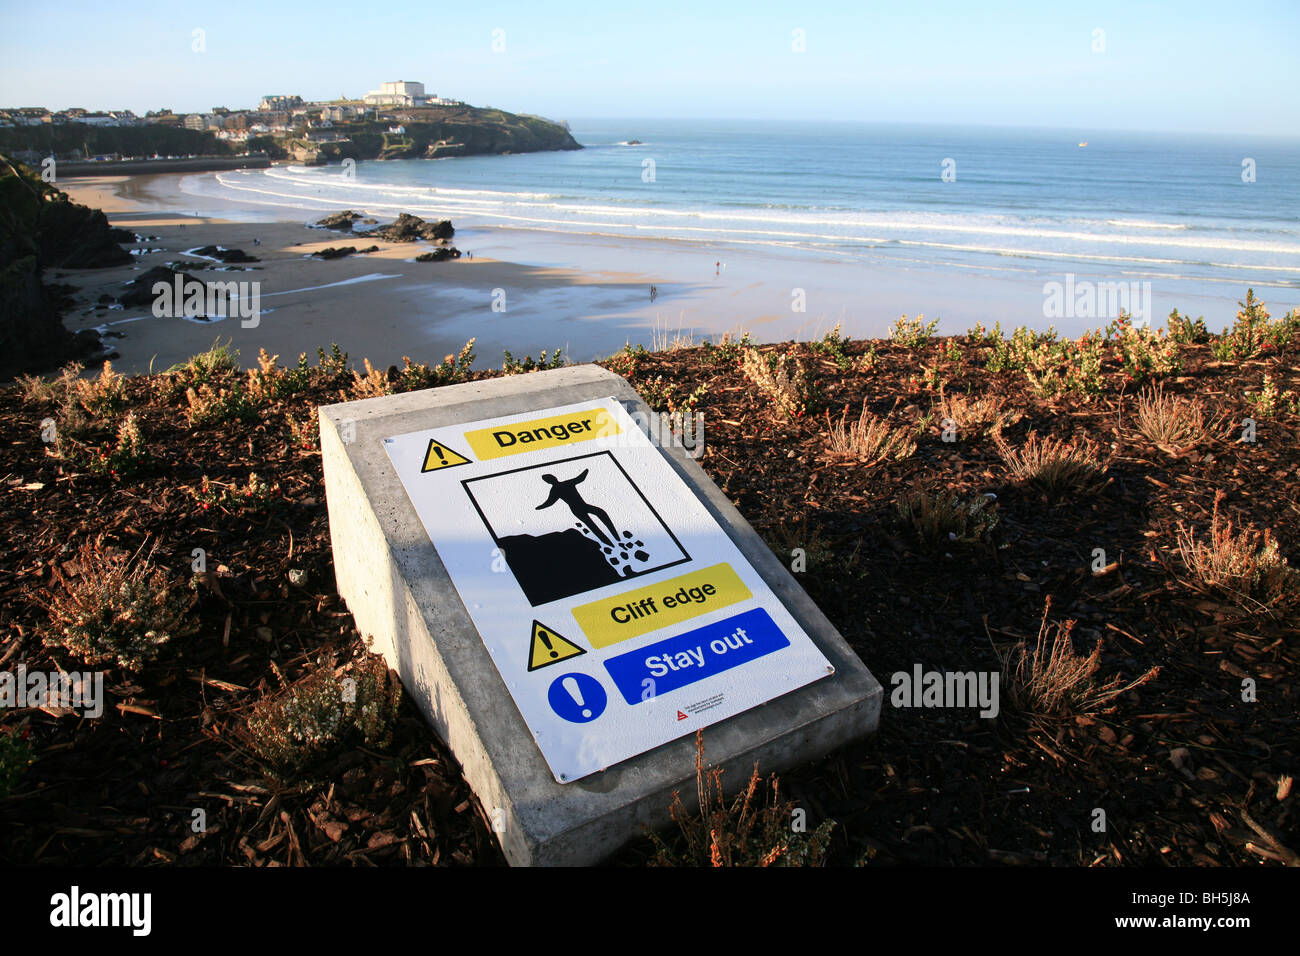 Danger cliff edge sign in Newquay, Cornwall. - Stock Image